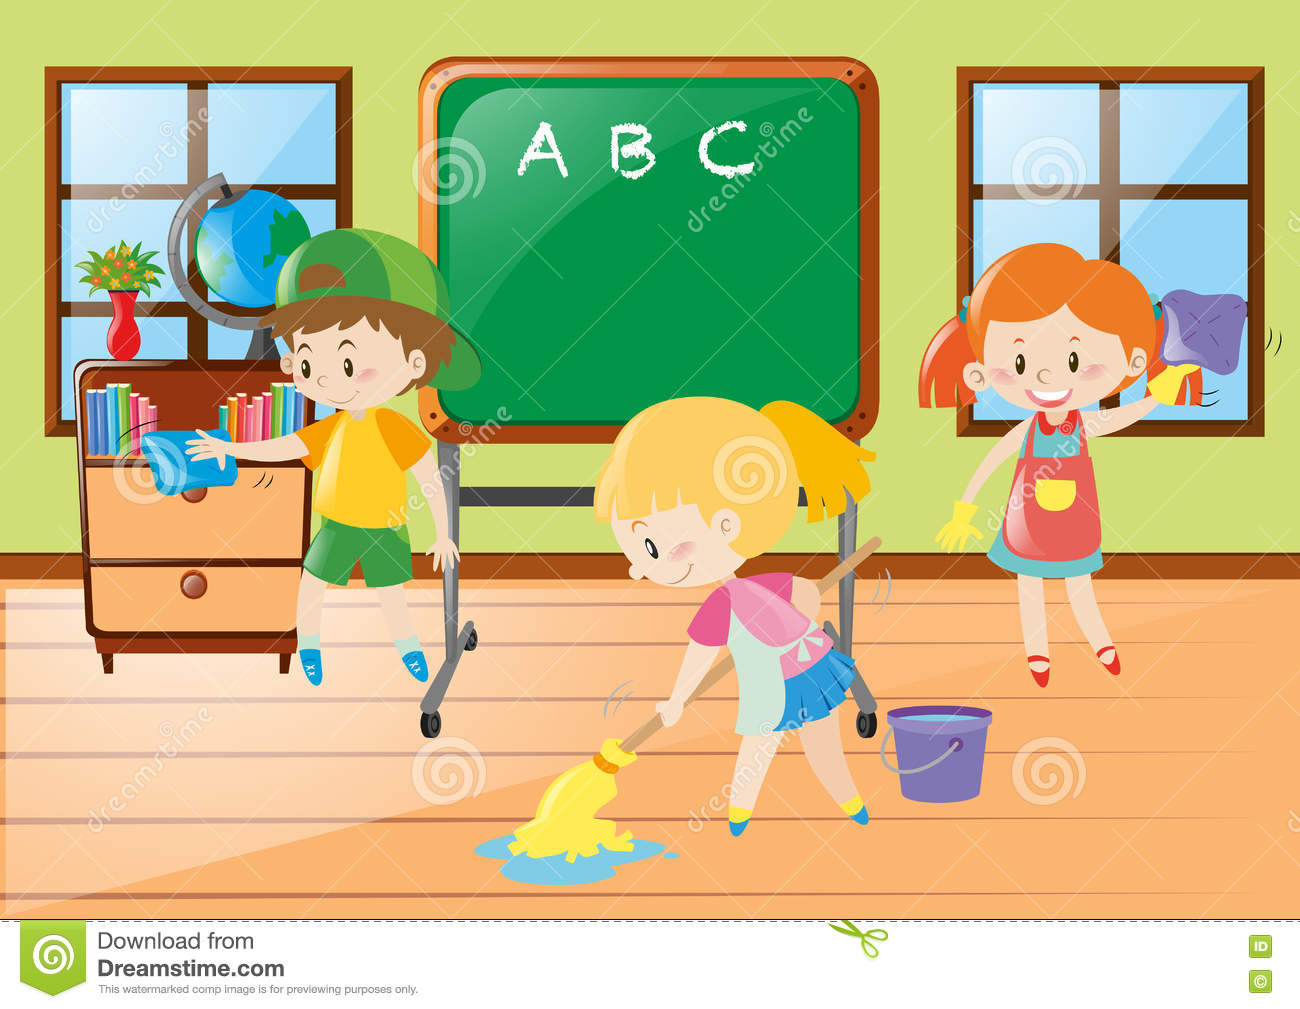 cleaning the classroom clipart 4 clipart station rh clipartstation com classroom clipart images classroom clipart black and white